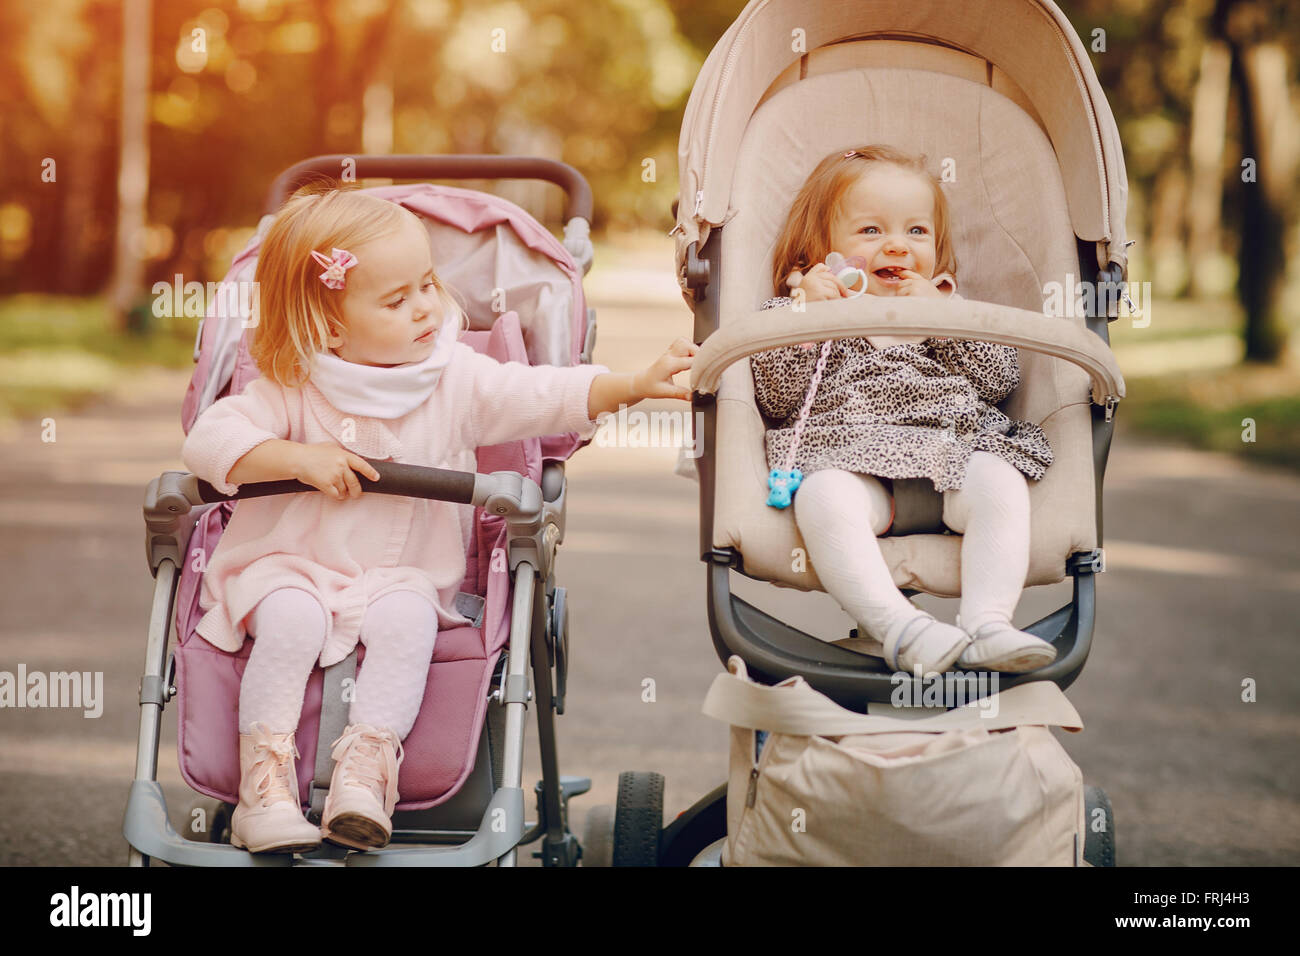 Family walk in the park - Stock Image